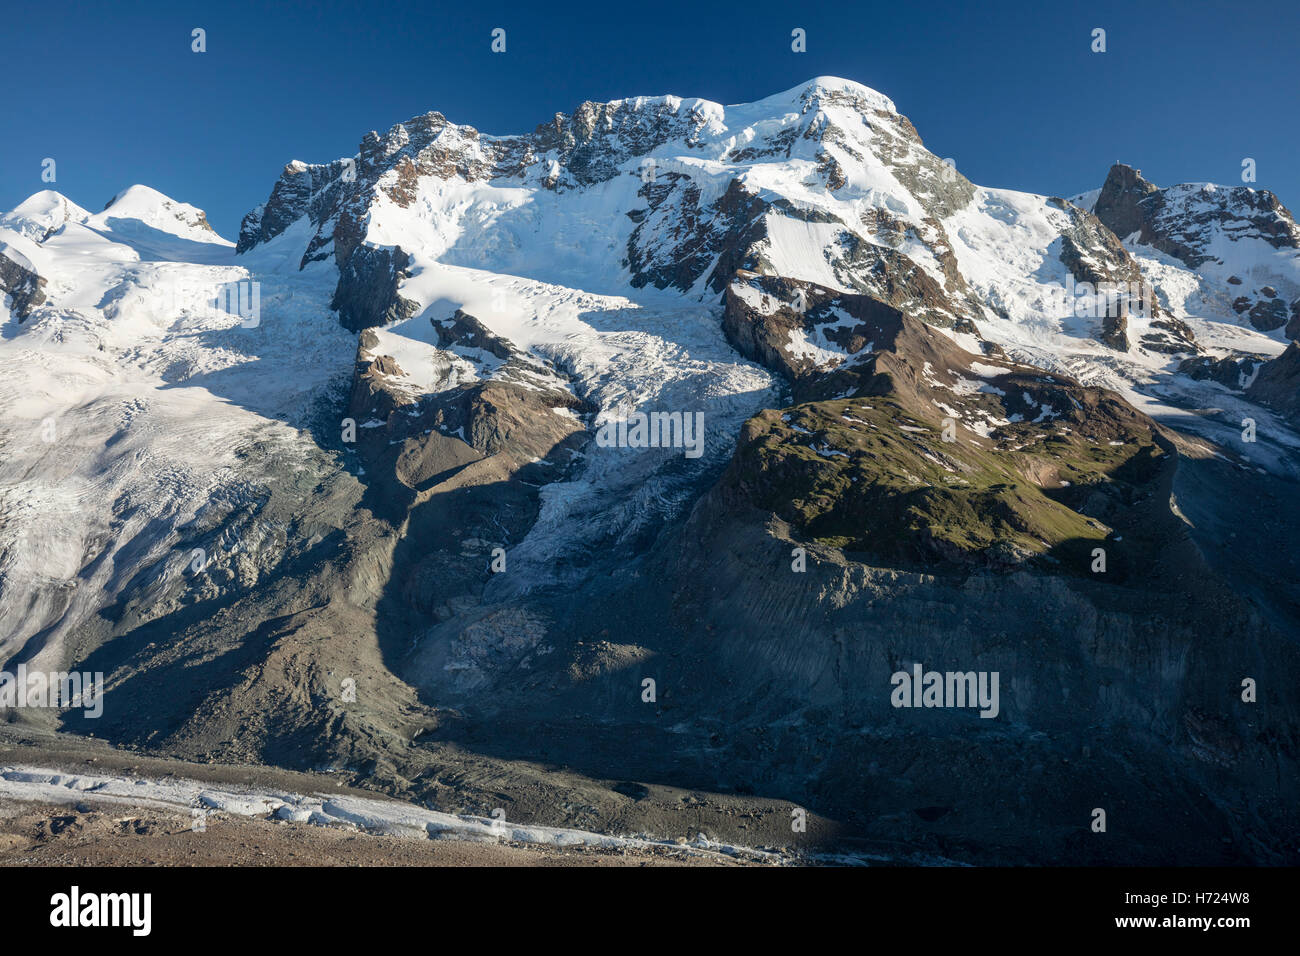 The Breithorn from Gornergrat, Zermatt, Pennine Alps, Valais, Switzerland. - Stock Image